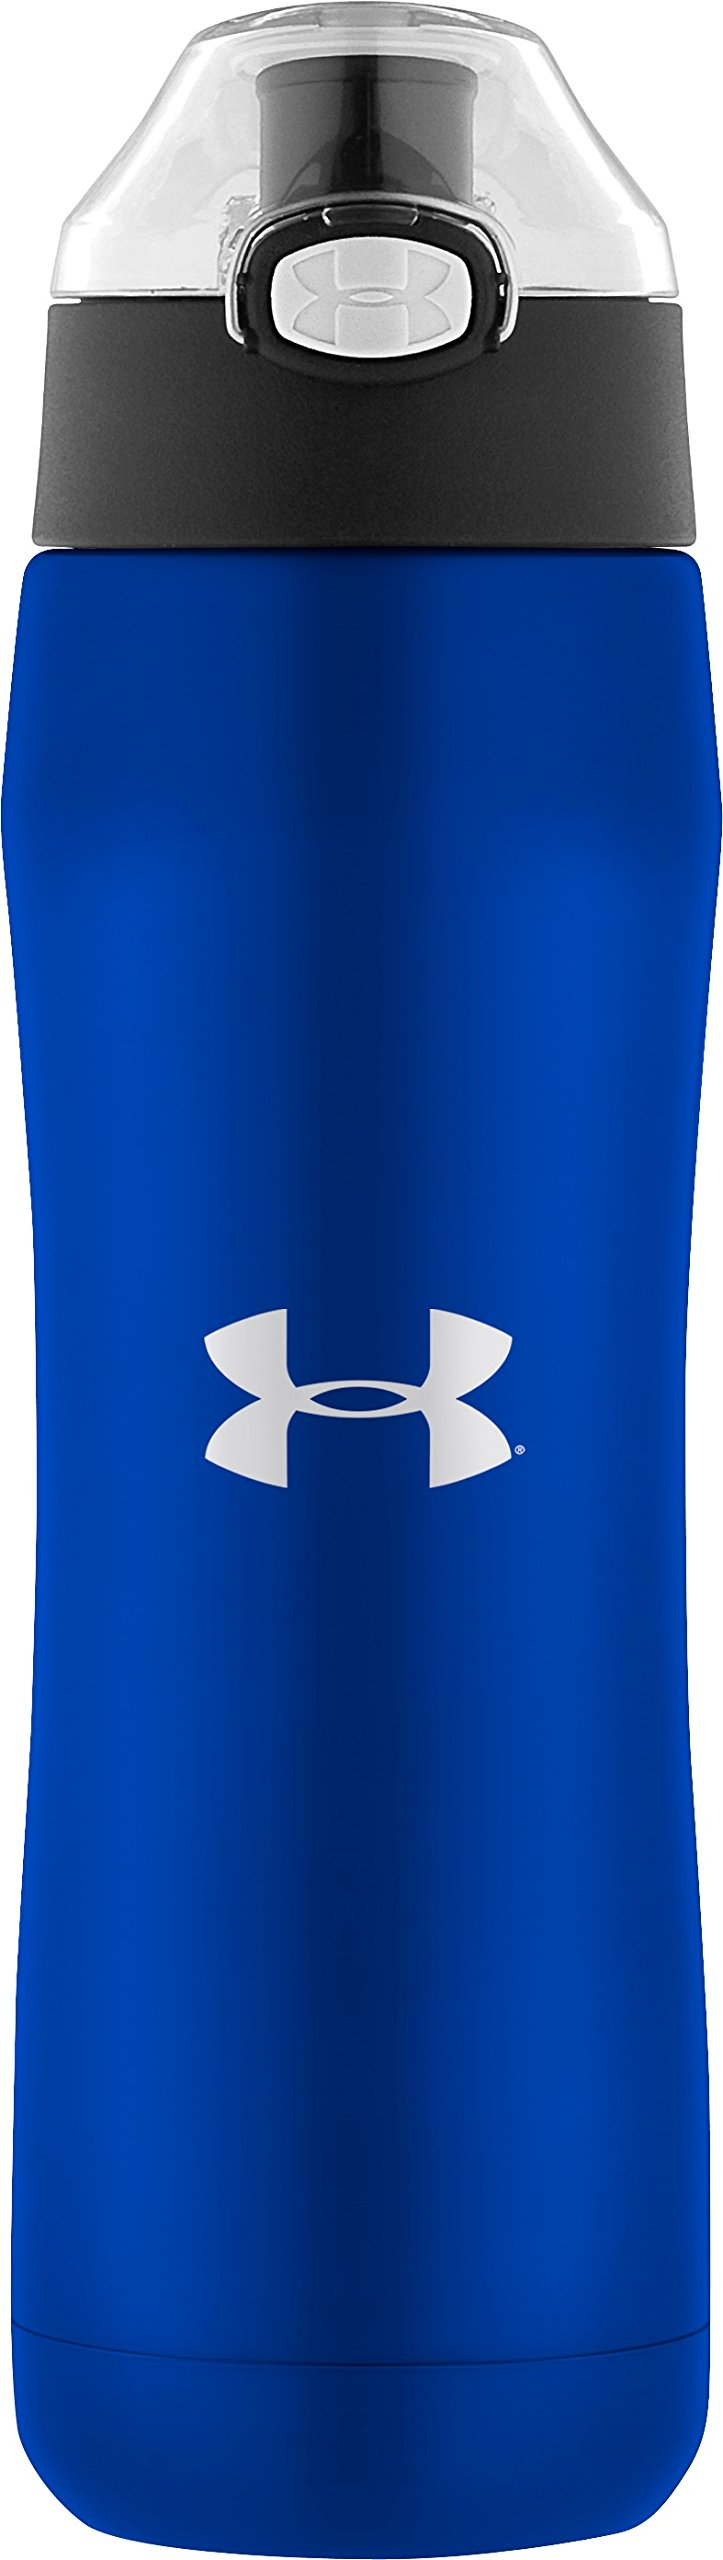 Under Armour Beyond 18 Ounce Stainless Steel Water Bottle, Royal Blue